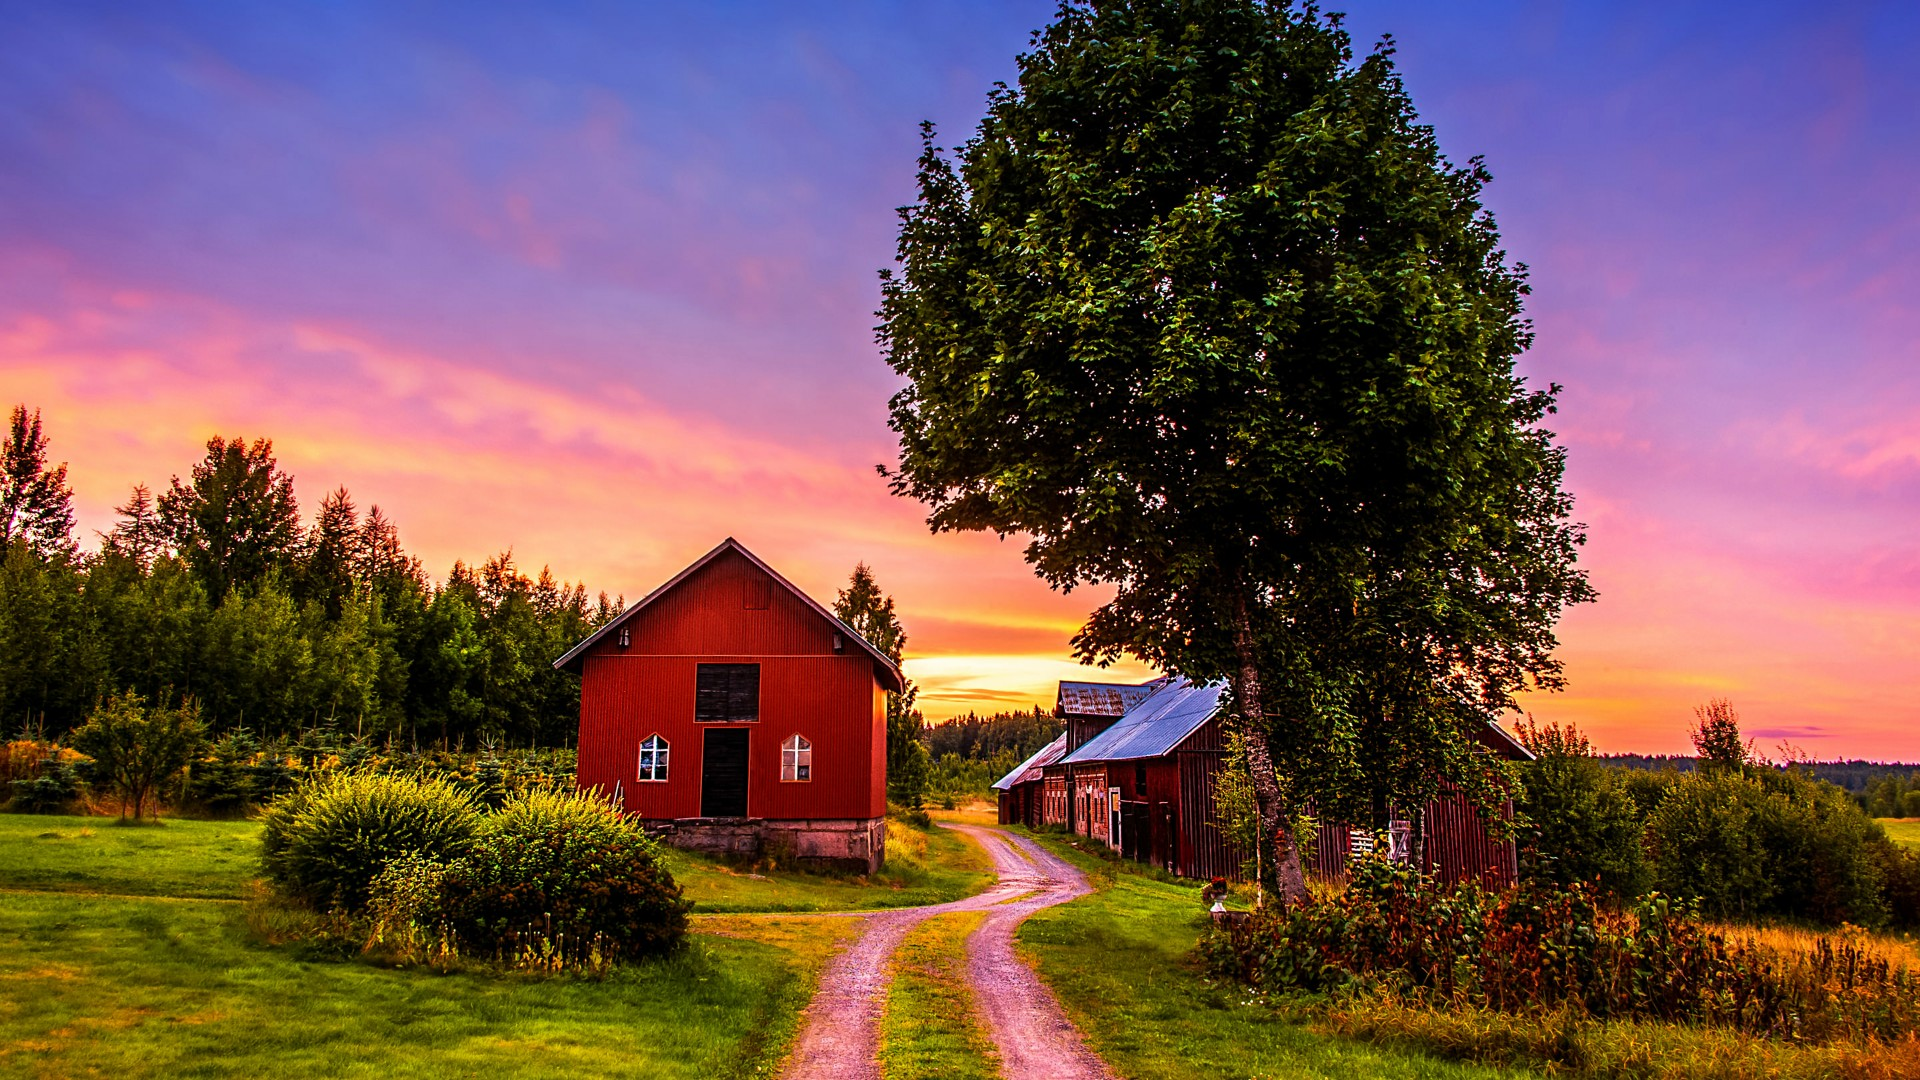 Farm house with a pathway wallpaper